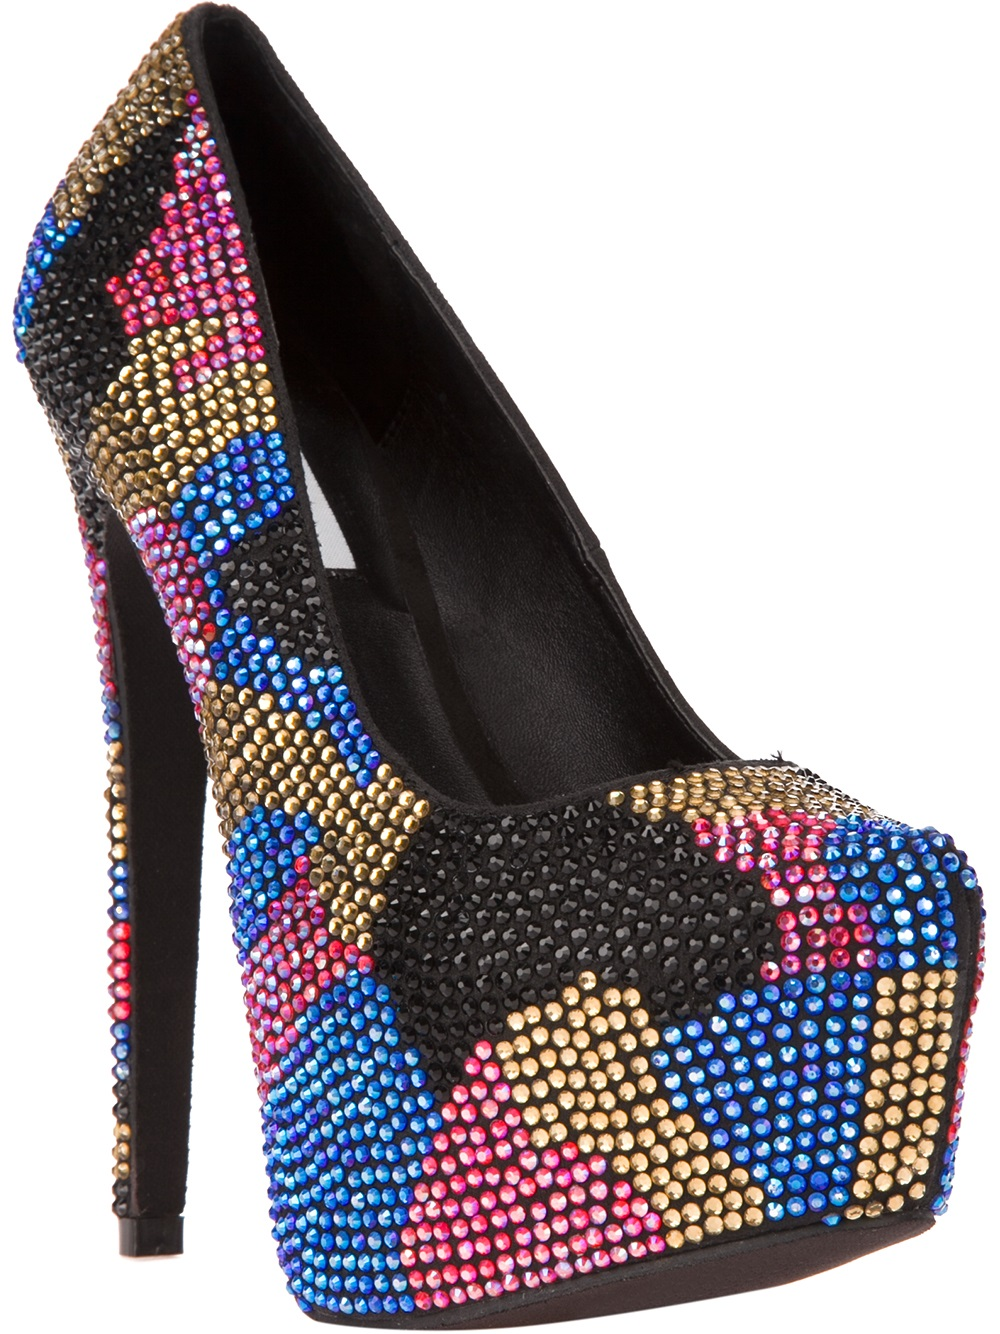 Lyst Steve Madden Dyvinal Embellished Pump In Metallic